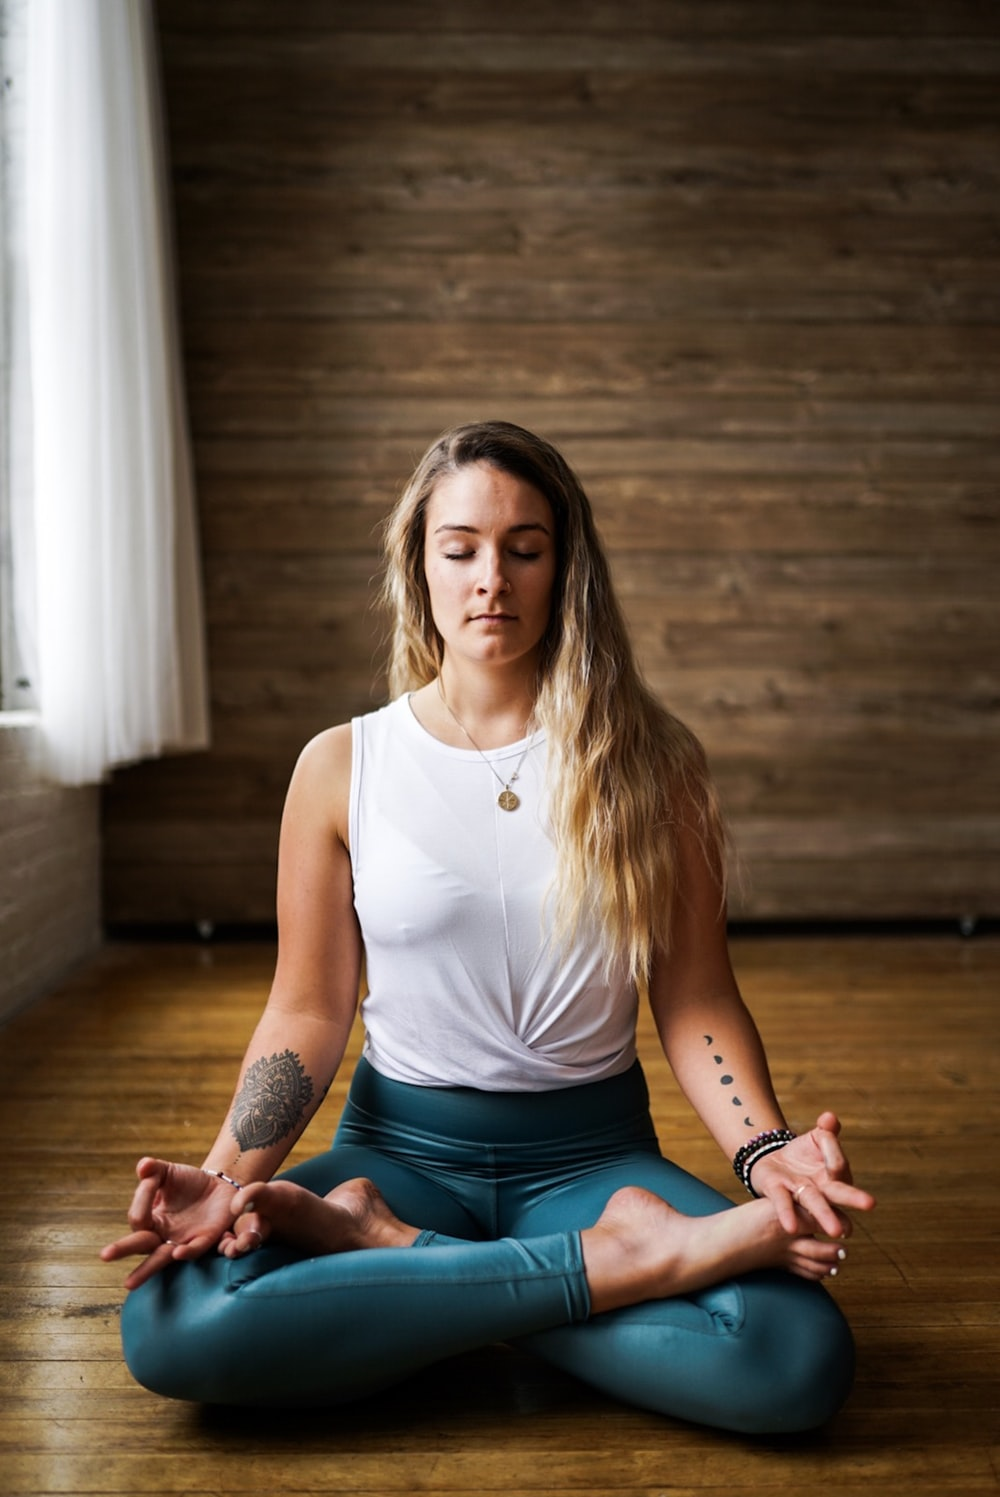 woman meditating inside room during daytime